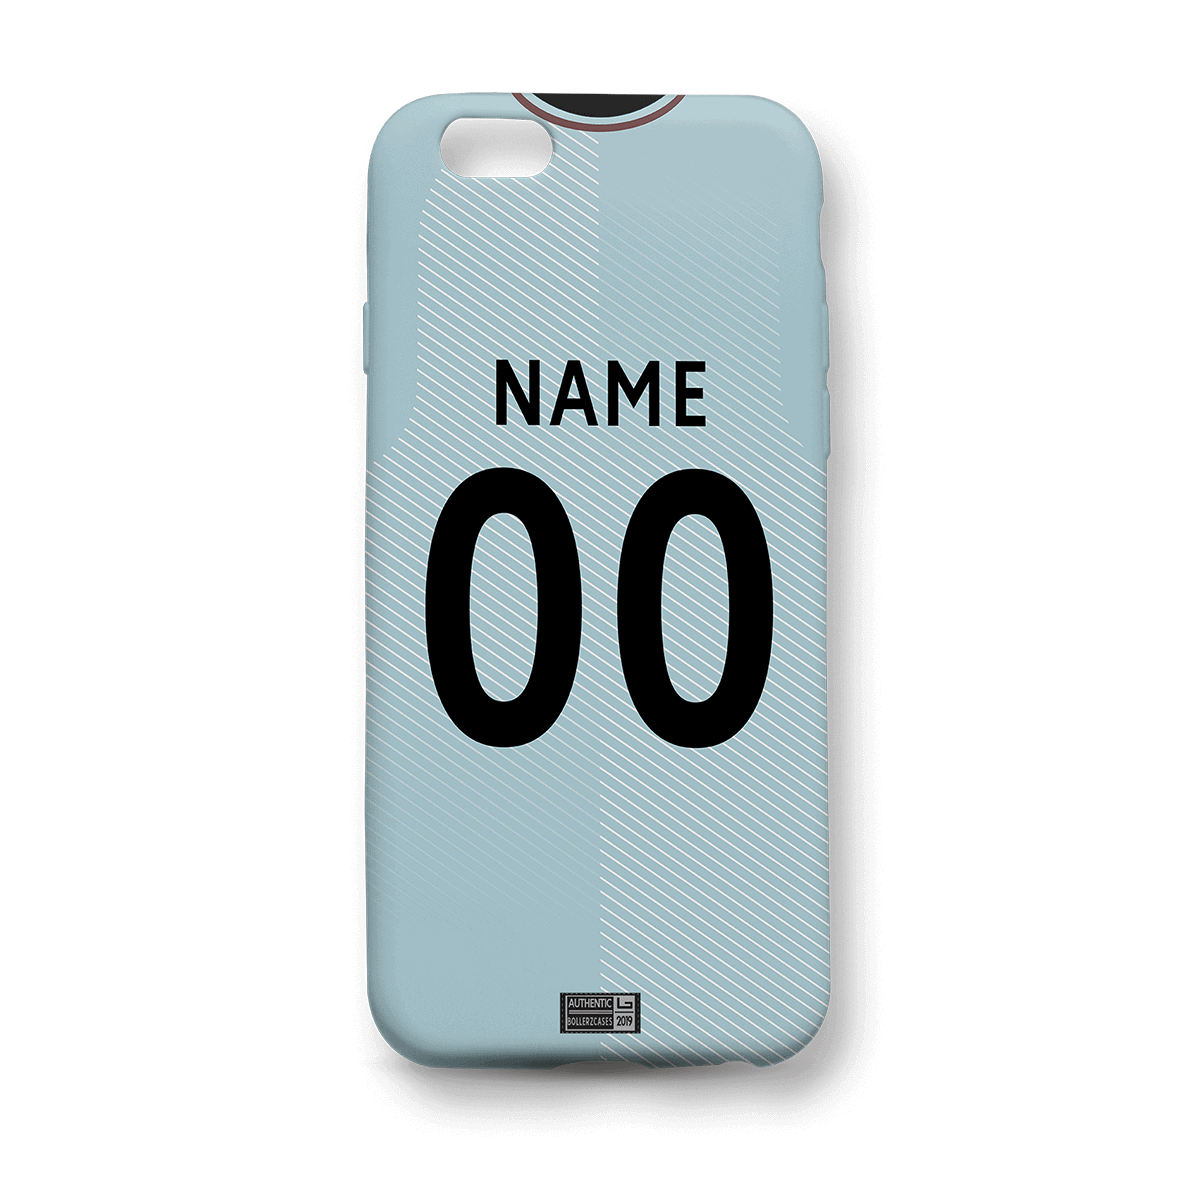 Aston Villa 19-20 Away kit phone case